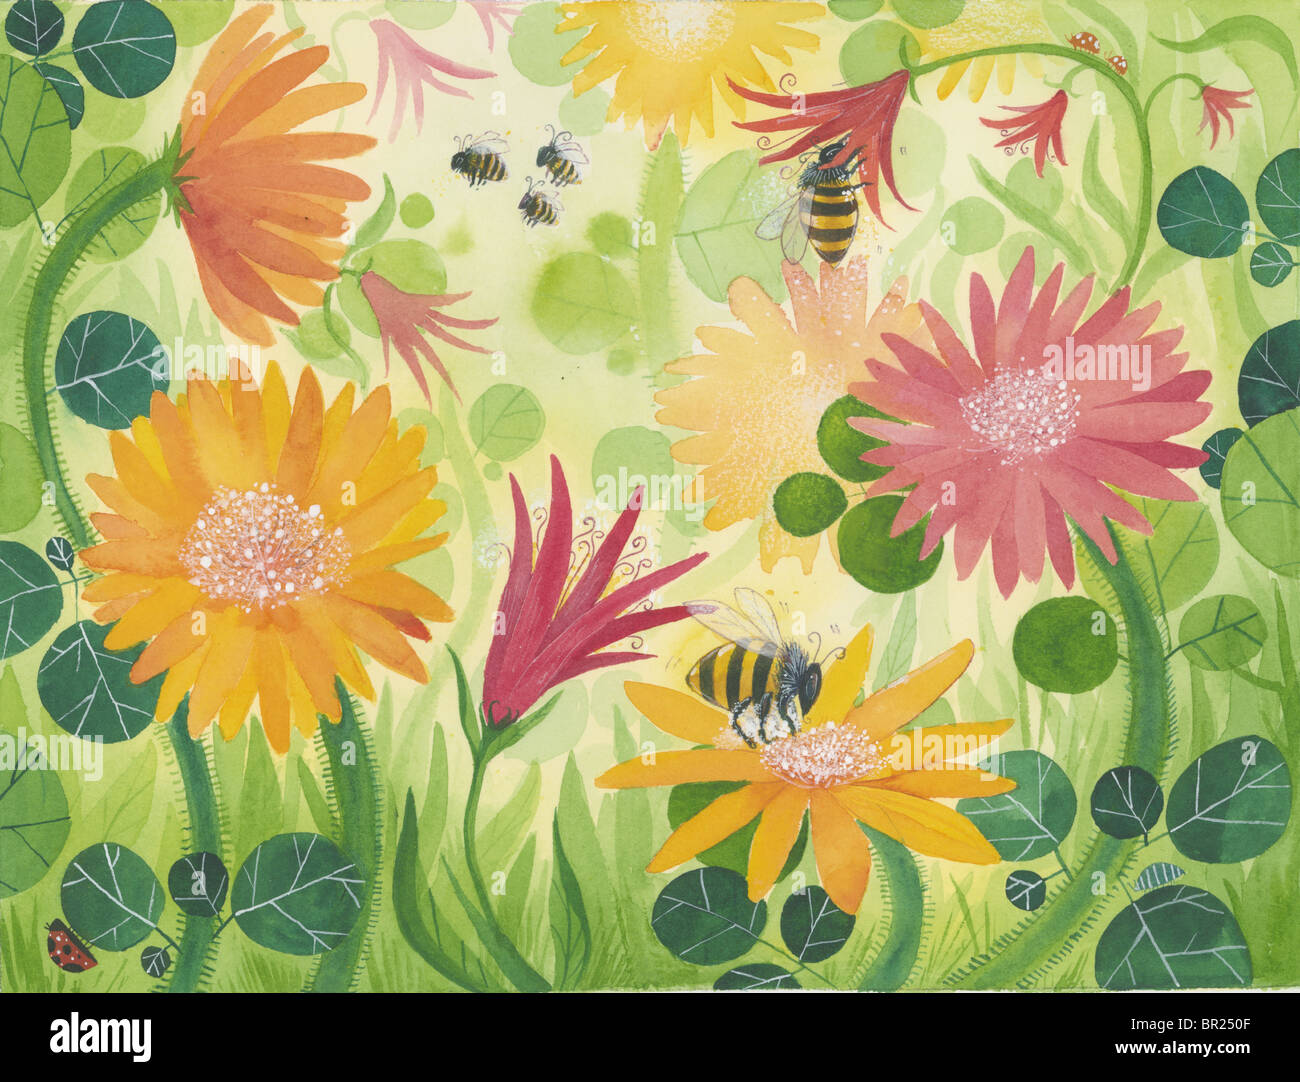 A picture of spring flowers with bees - Stock Image